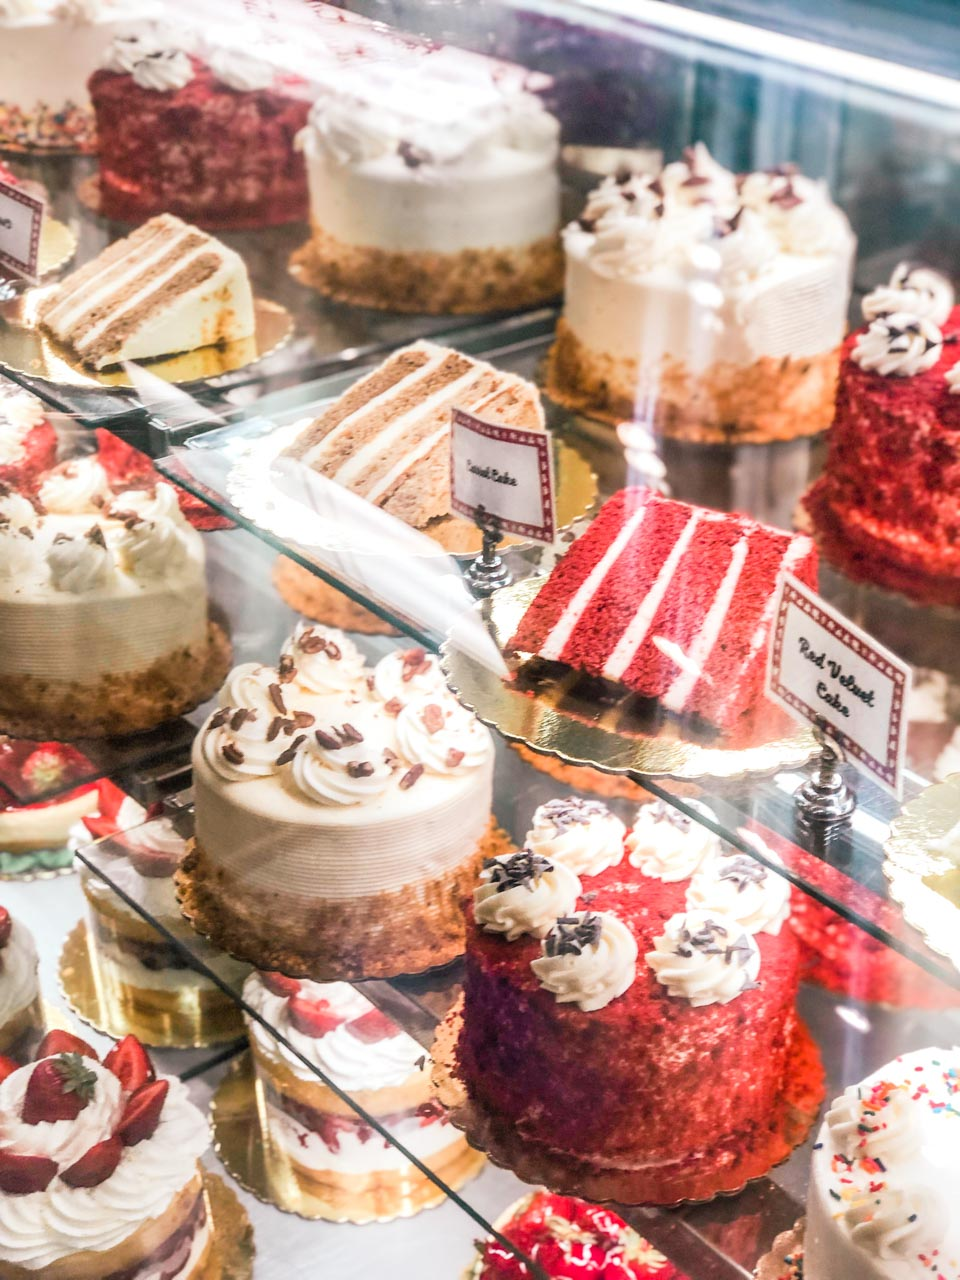 Carrot cake and red velvet cake on display inside Carlo's Bakery in Hoboken, New Jersey